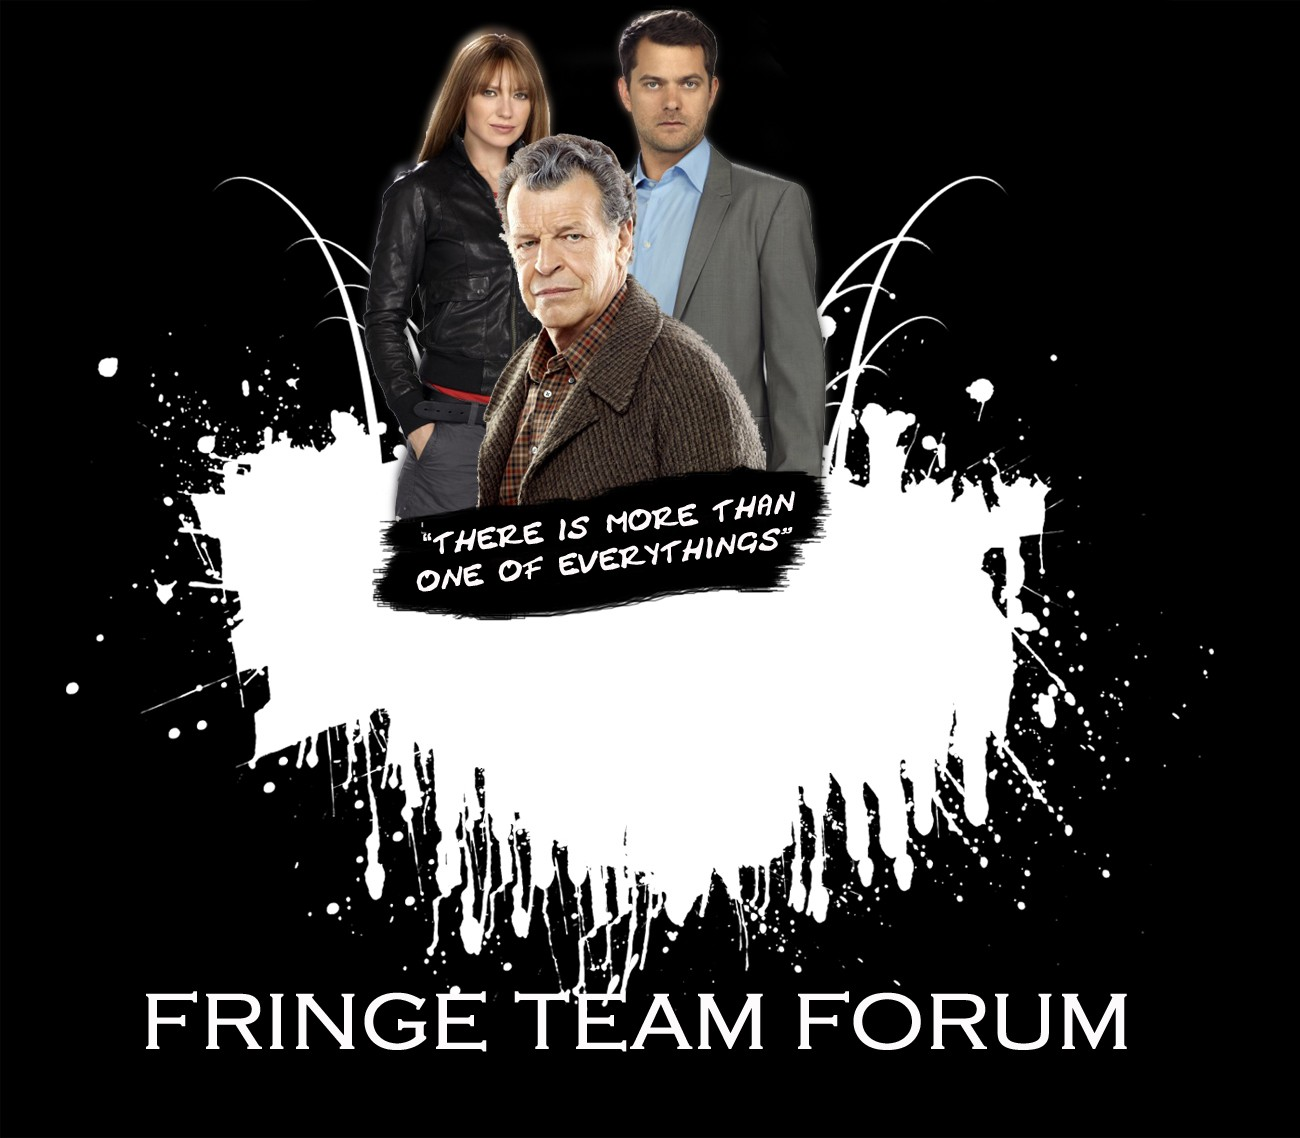 Fringe team Forum